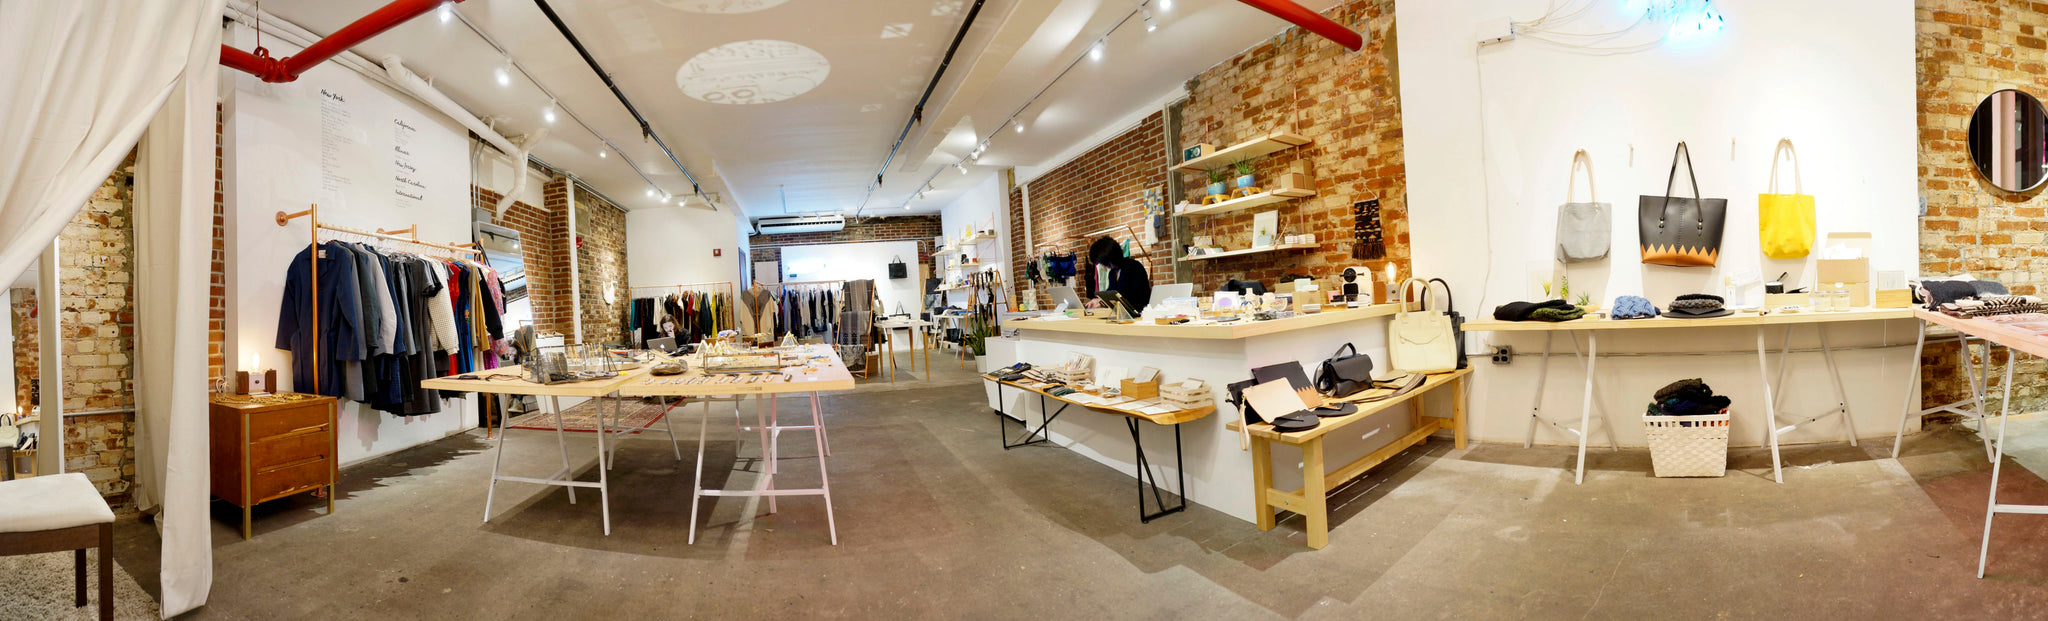 Holiday Pop-up Market with Emerging Designers and Makers Hosted by Young and Able